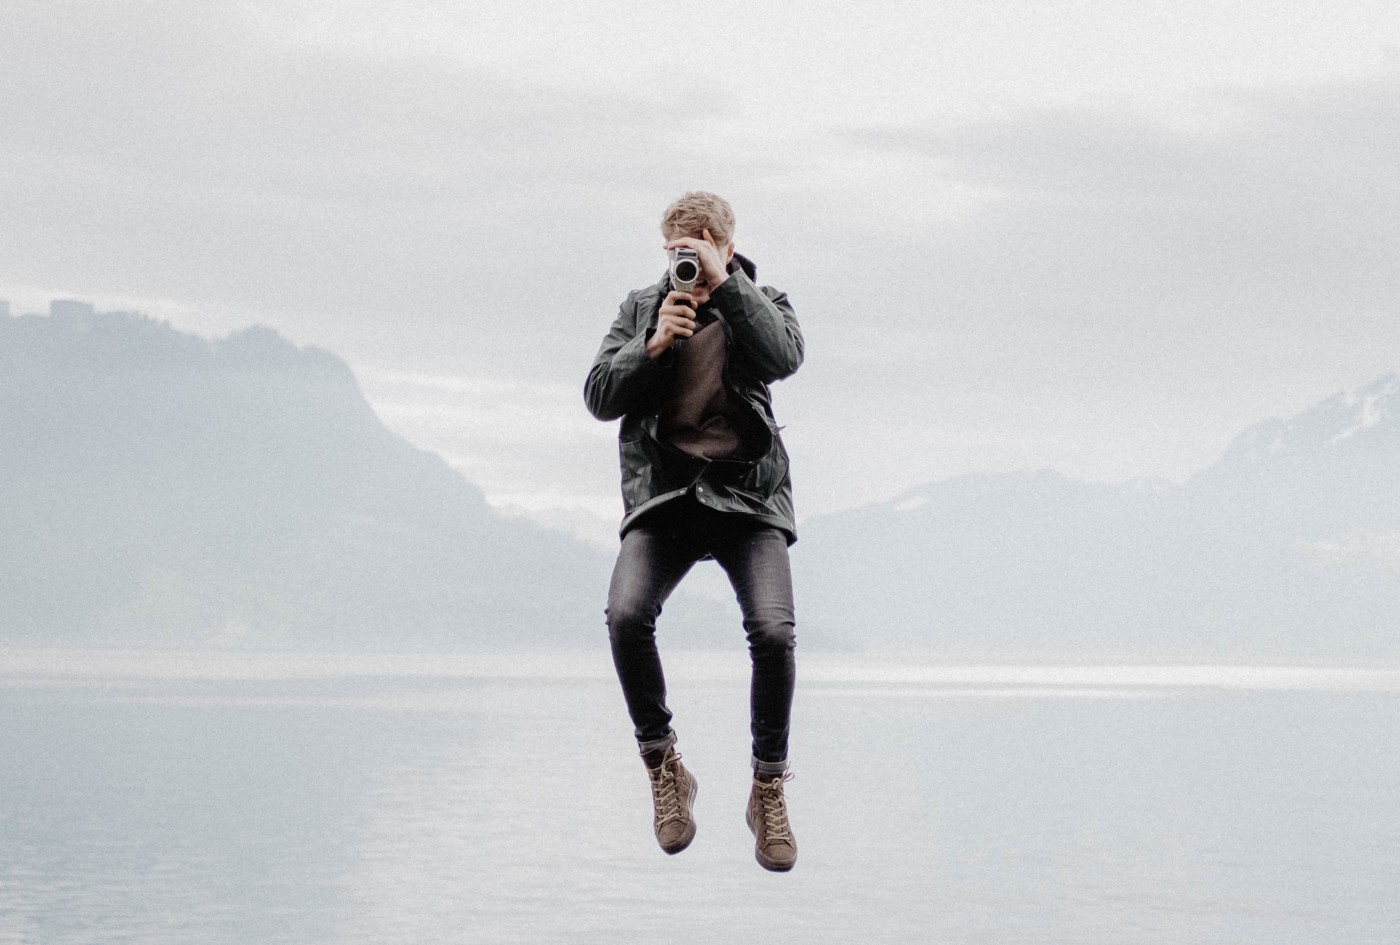 A man floating above water with an old camera in his hands.